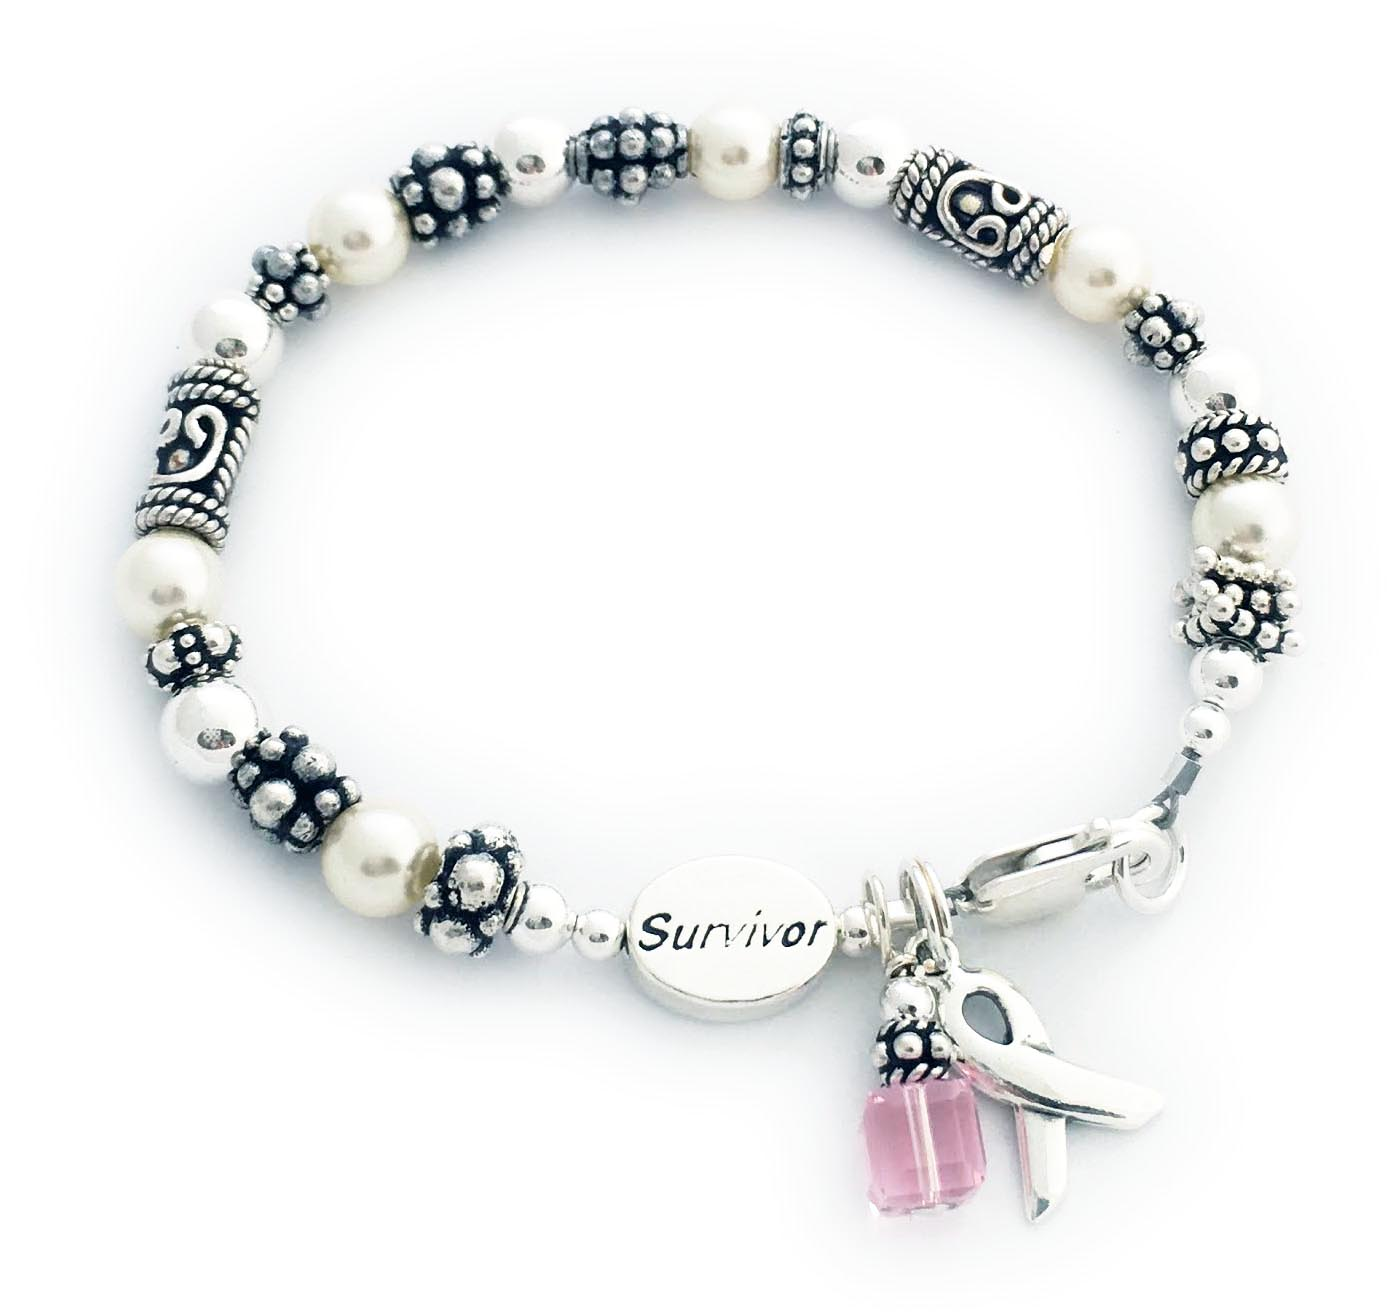 Cancer Survivor Bracelet. Shown with a pink dangle and ribbon charm. You choose the cancer awareness color. You may added SURVIVOR, In memory, Hope or Courage beads. JBL-R-42-sterling